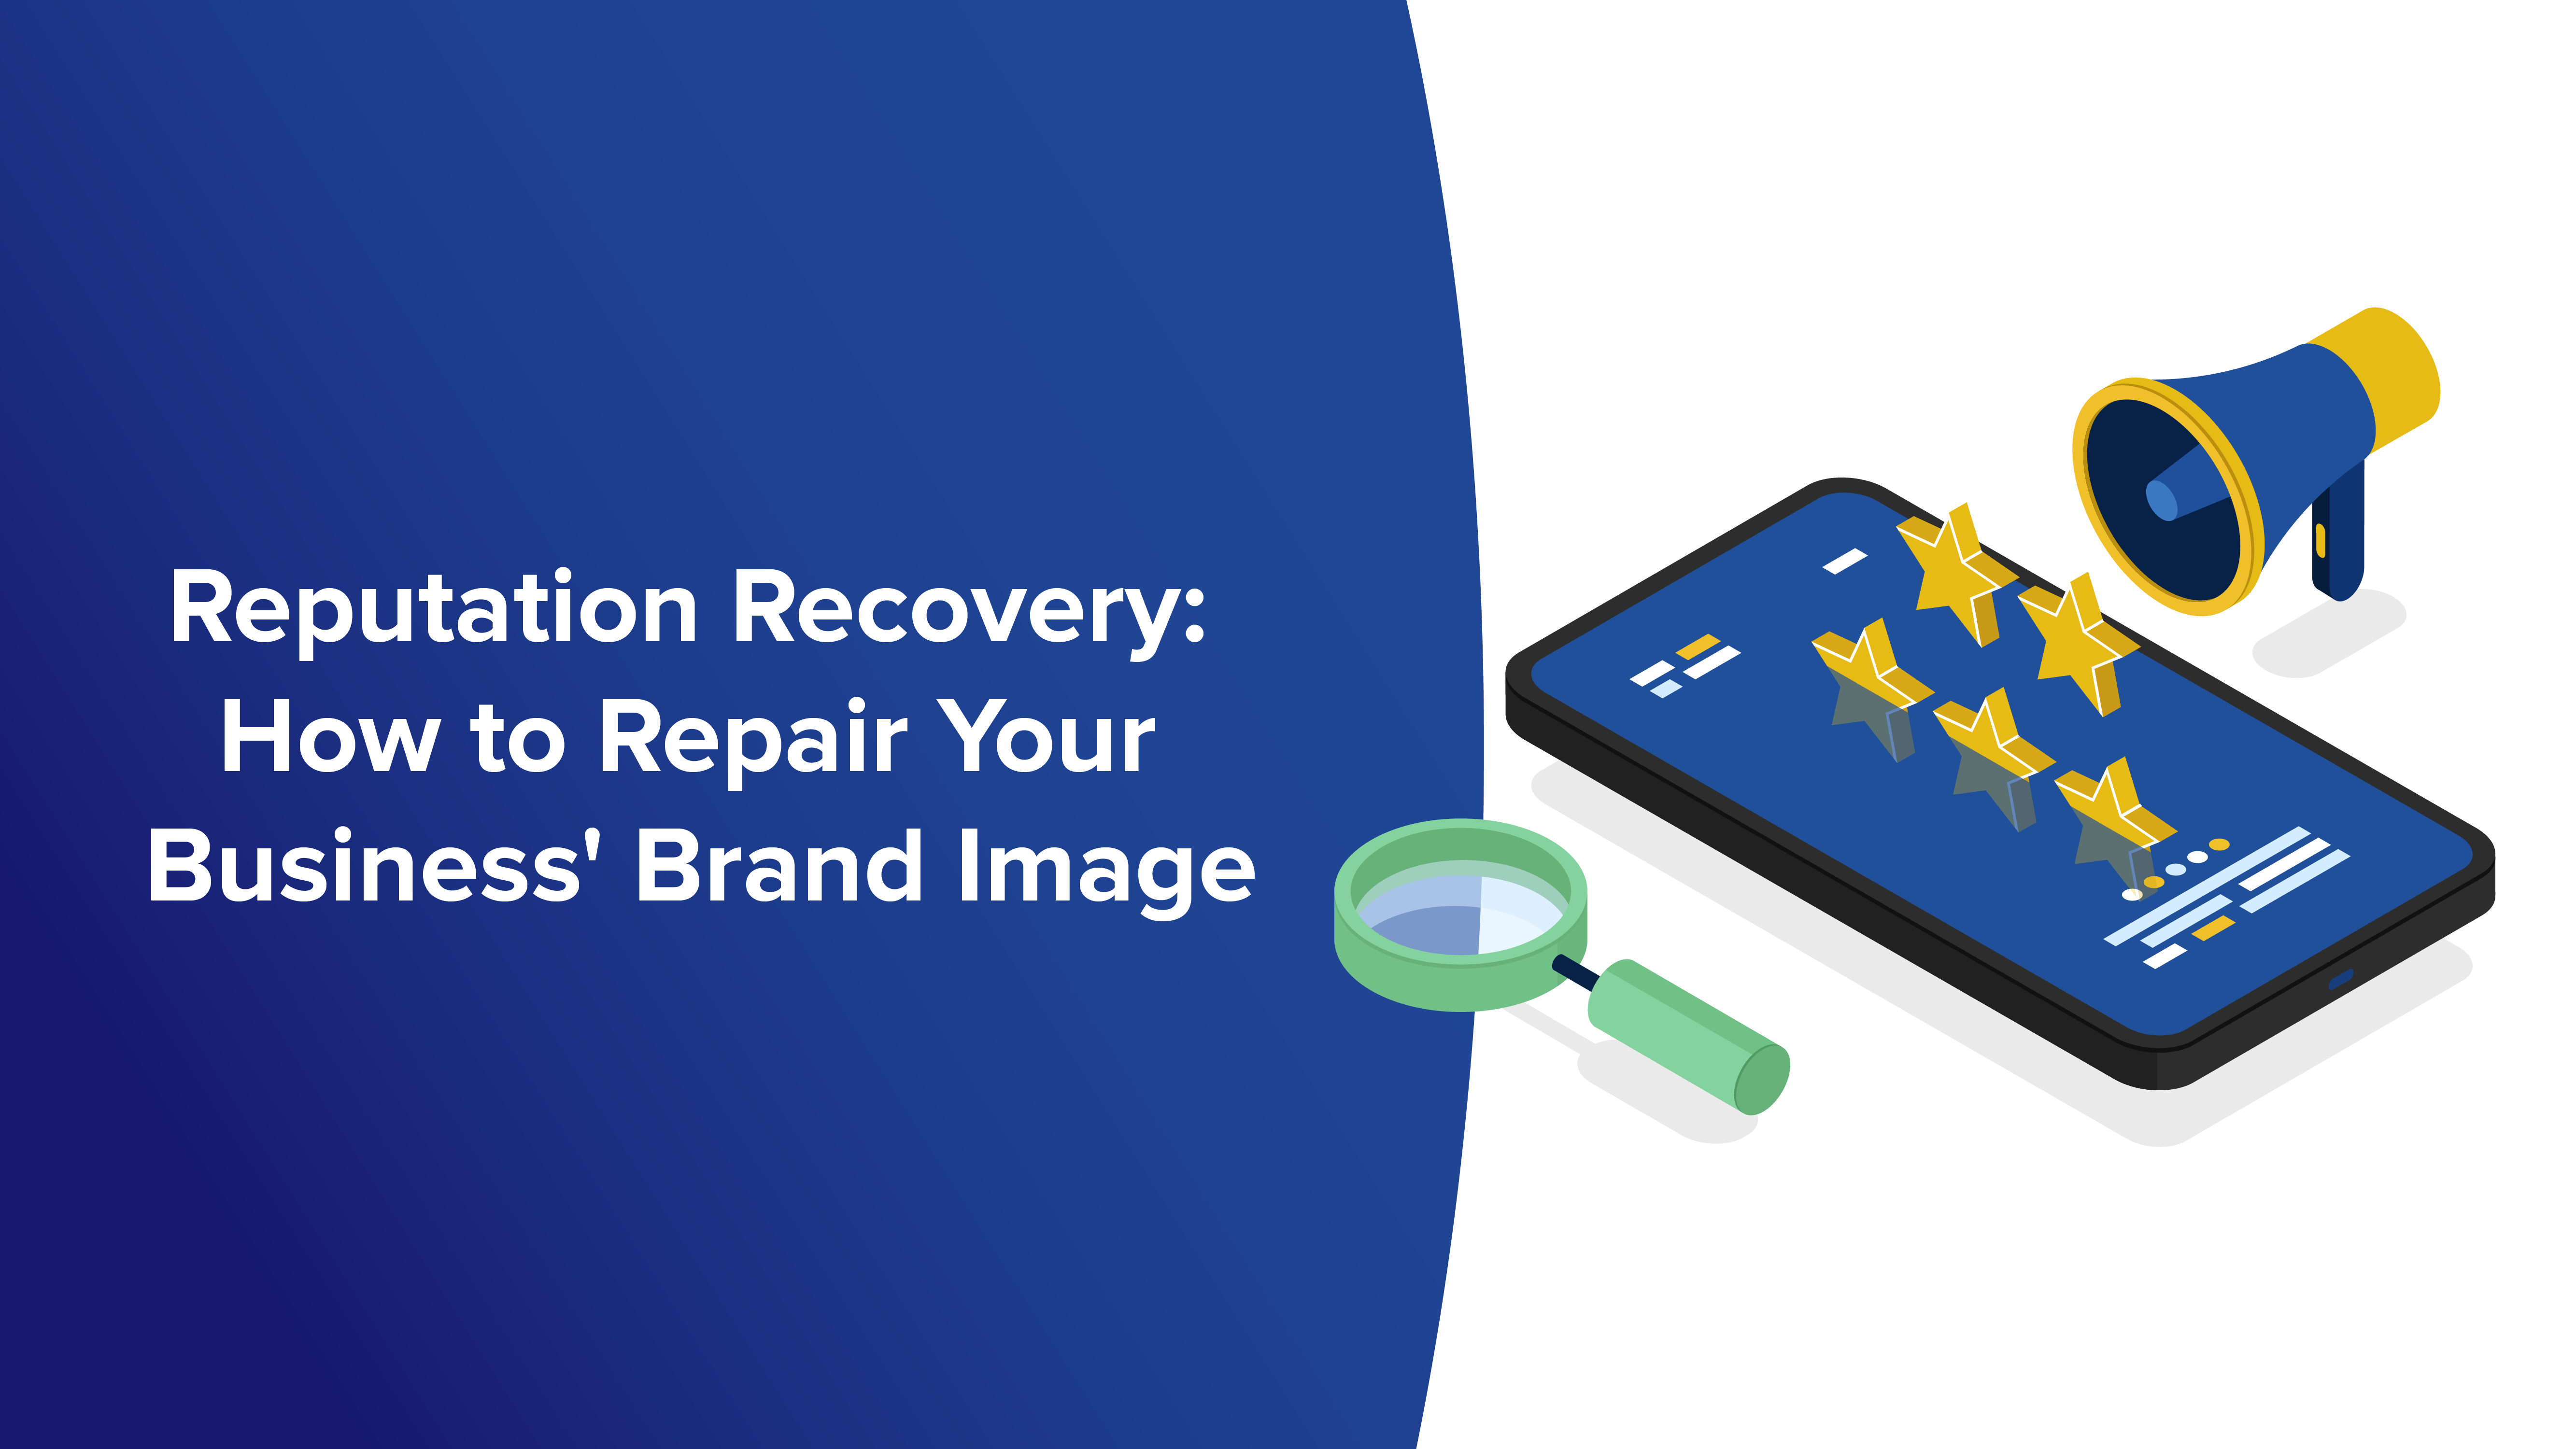 Reputation Recovery: How to Repair Your Business' Brand Image